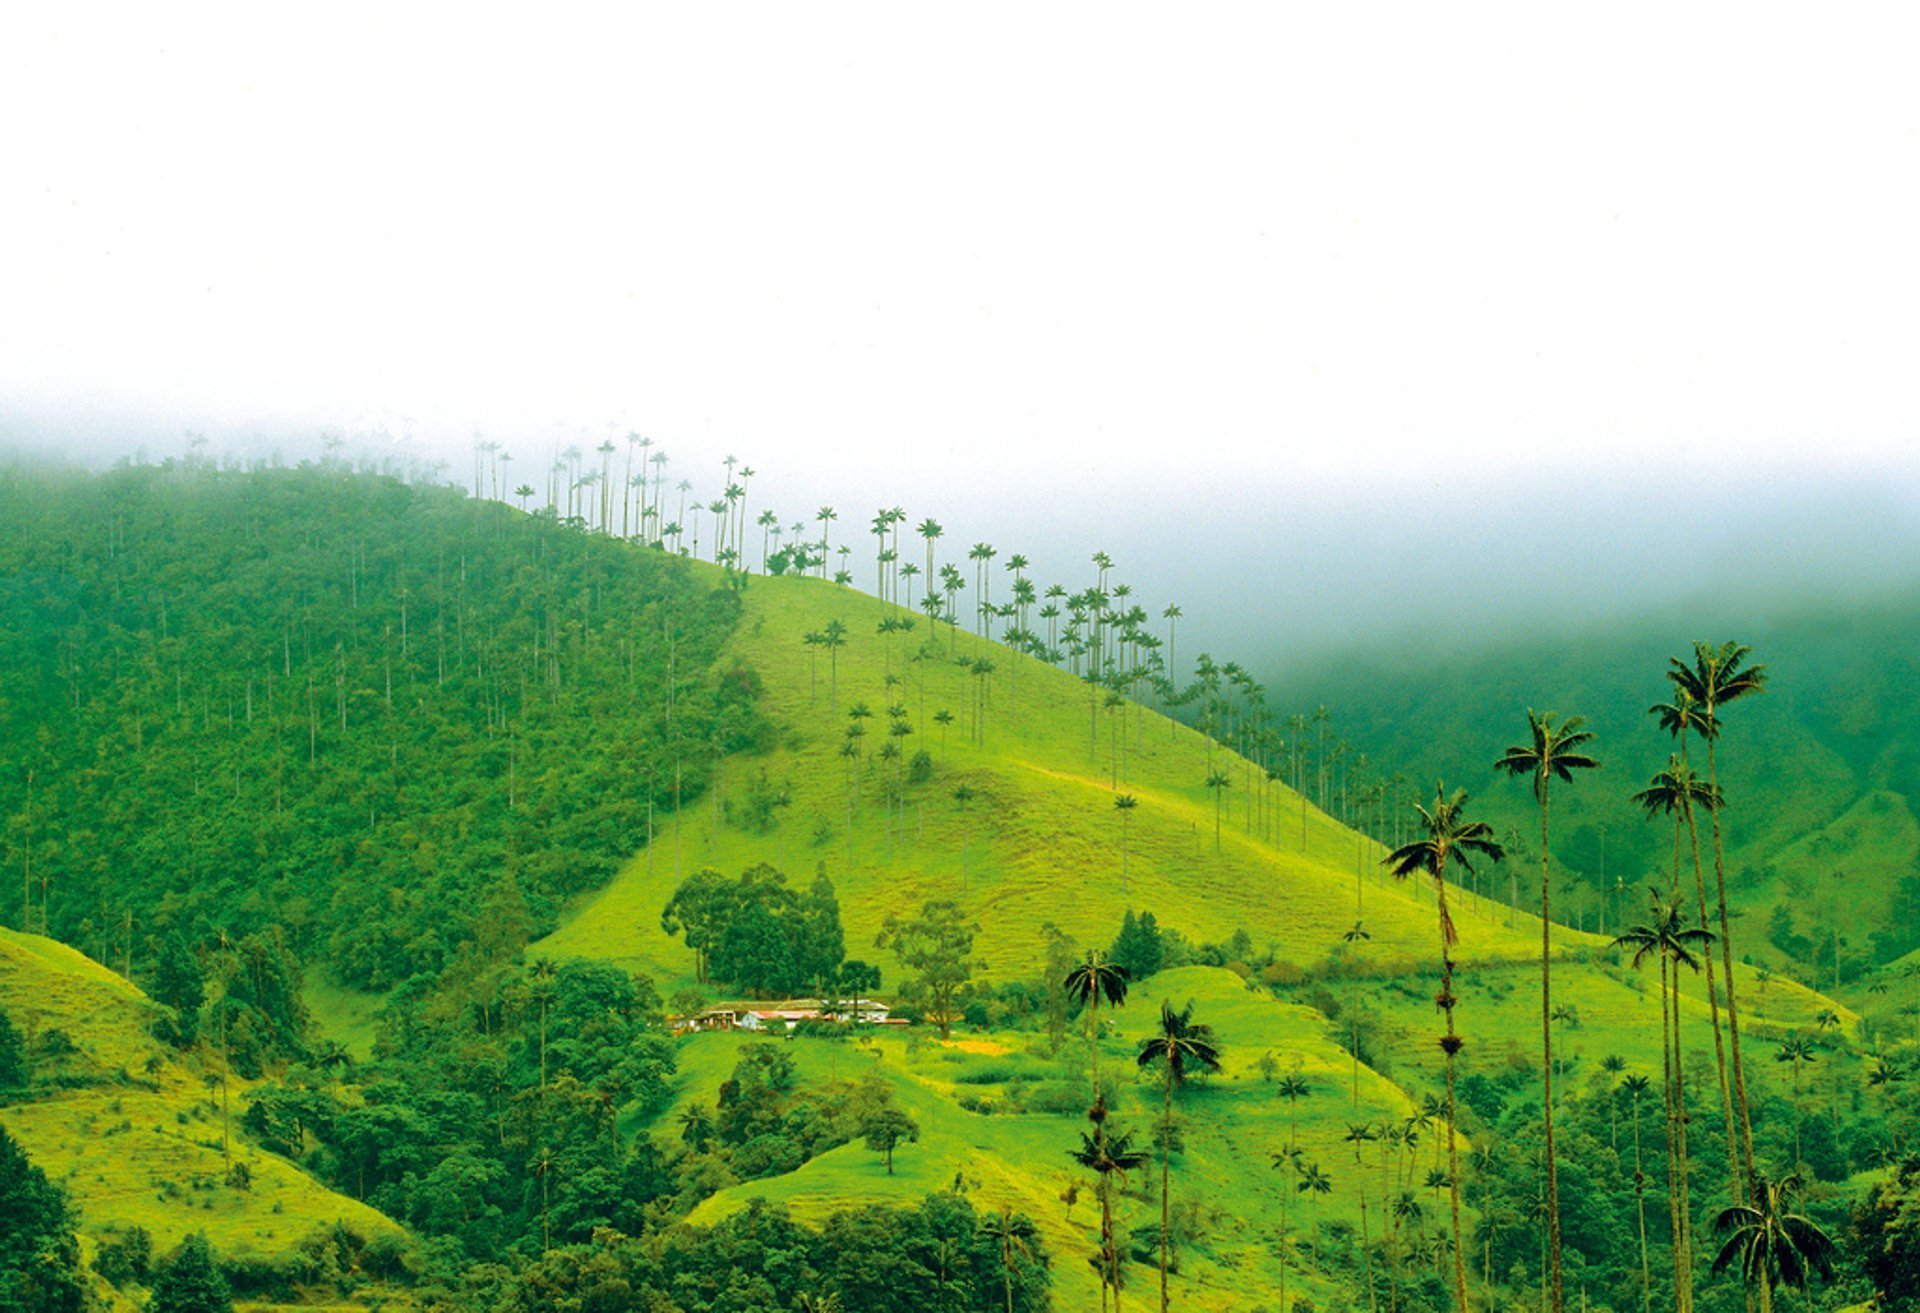 Trekking in the Cocora Valley in Colombia 2020 - Best Time